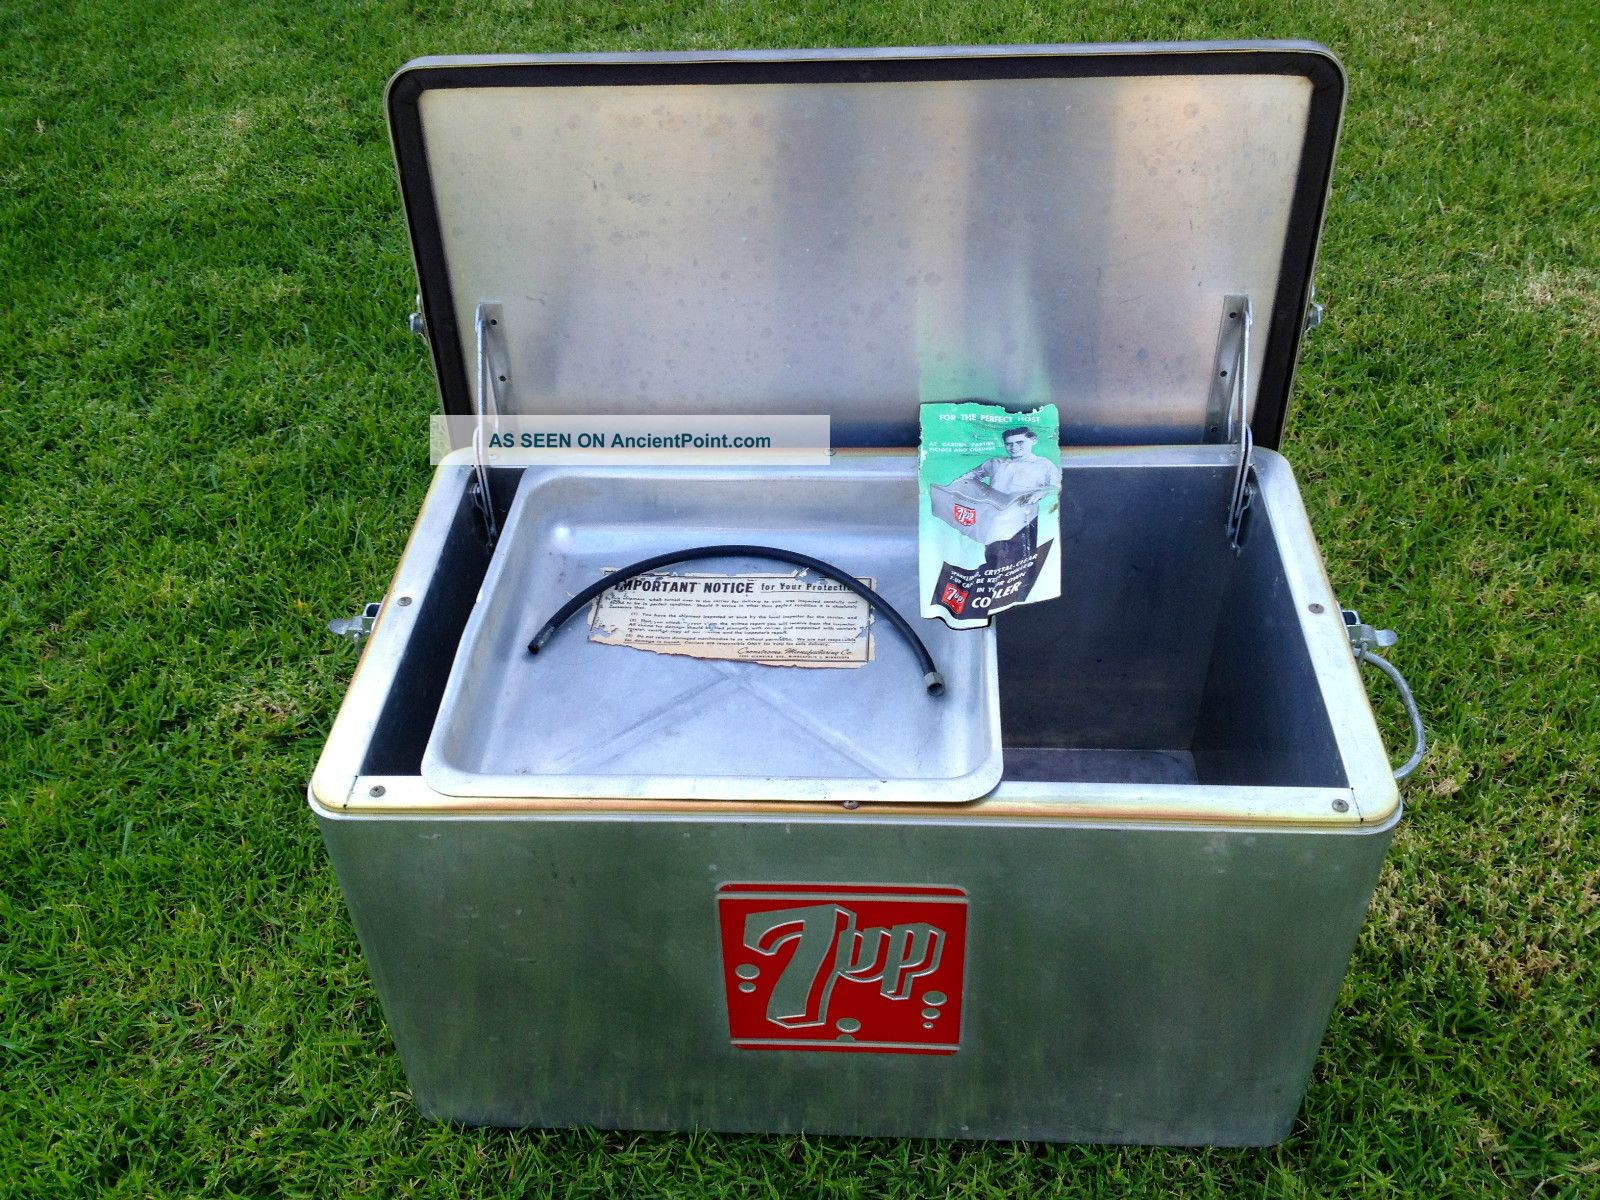 Vintage Ice Box 7up Model 13 - Shm - 7up Cooler Minneapolis,  Mn.  By Cronstroms Ice Boxes photo